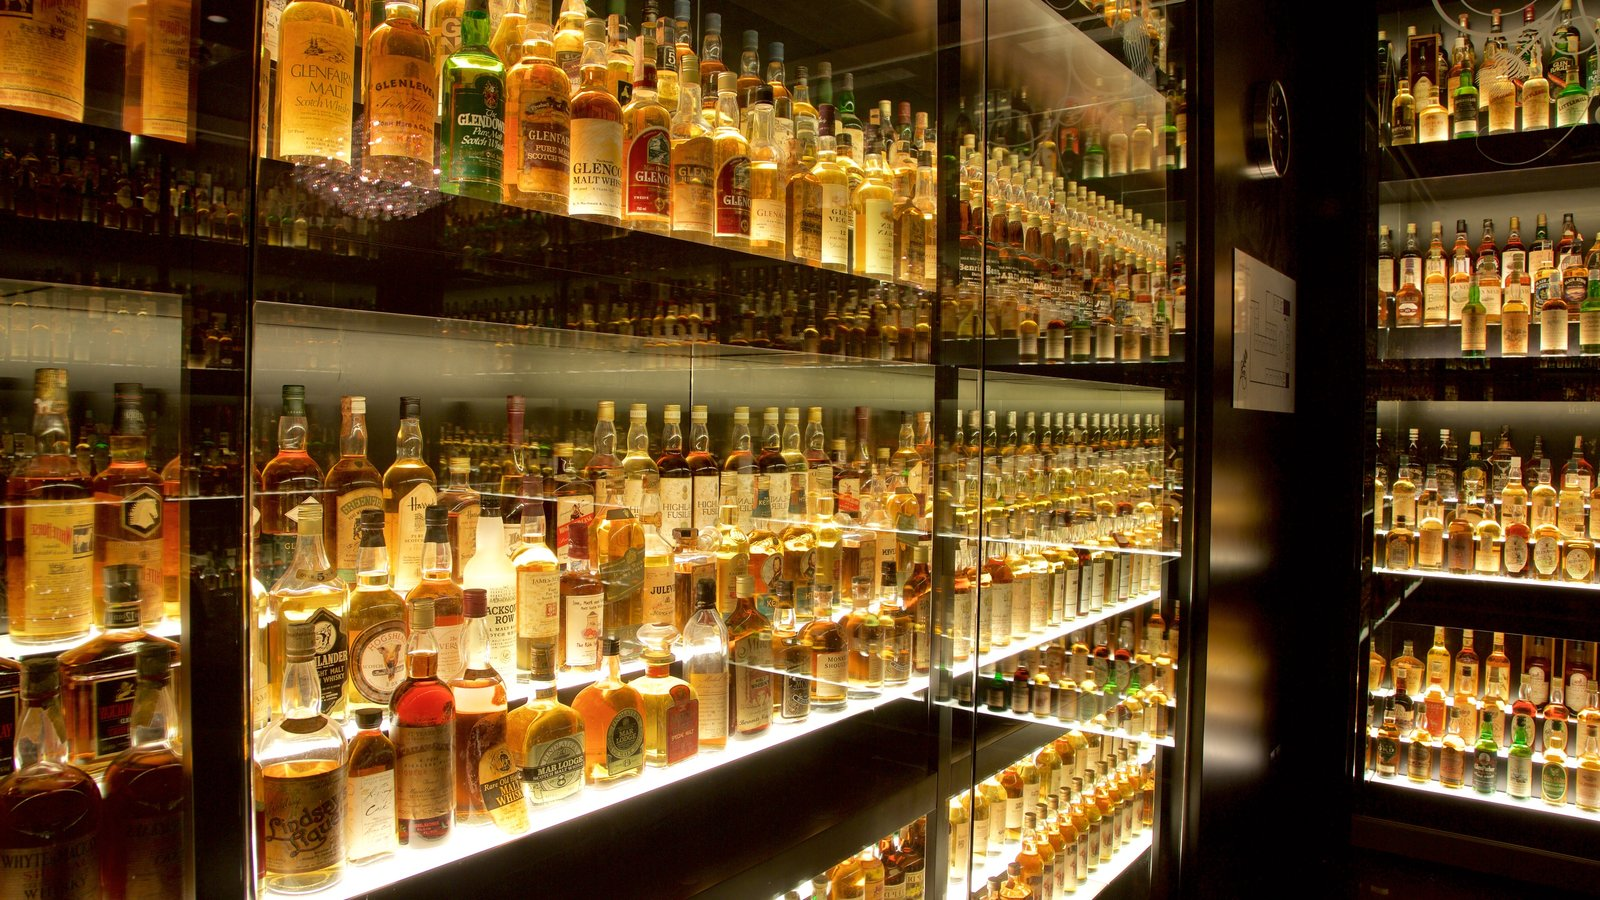 Scotch Whisky Heritage Centre featuring interior views and drinks or beverages